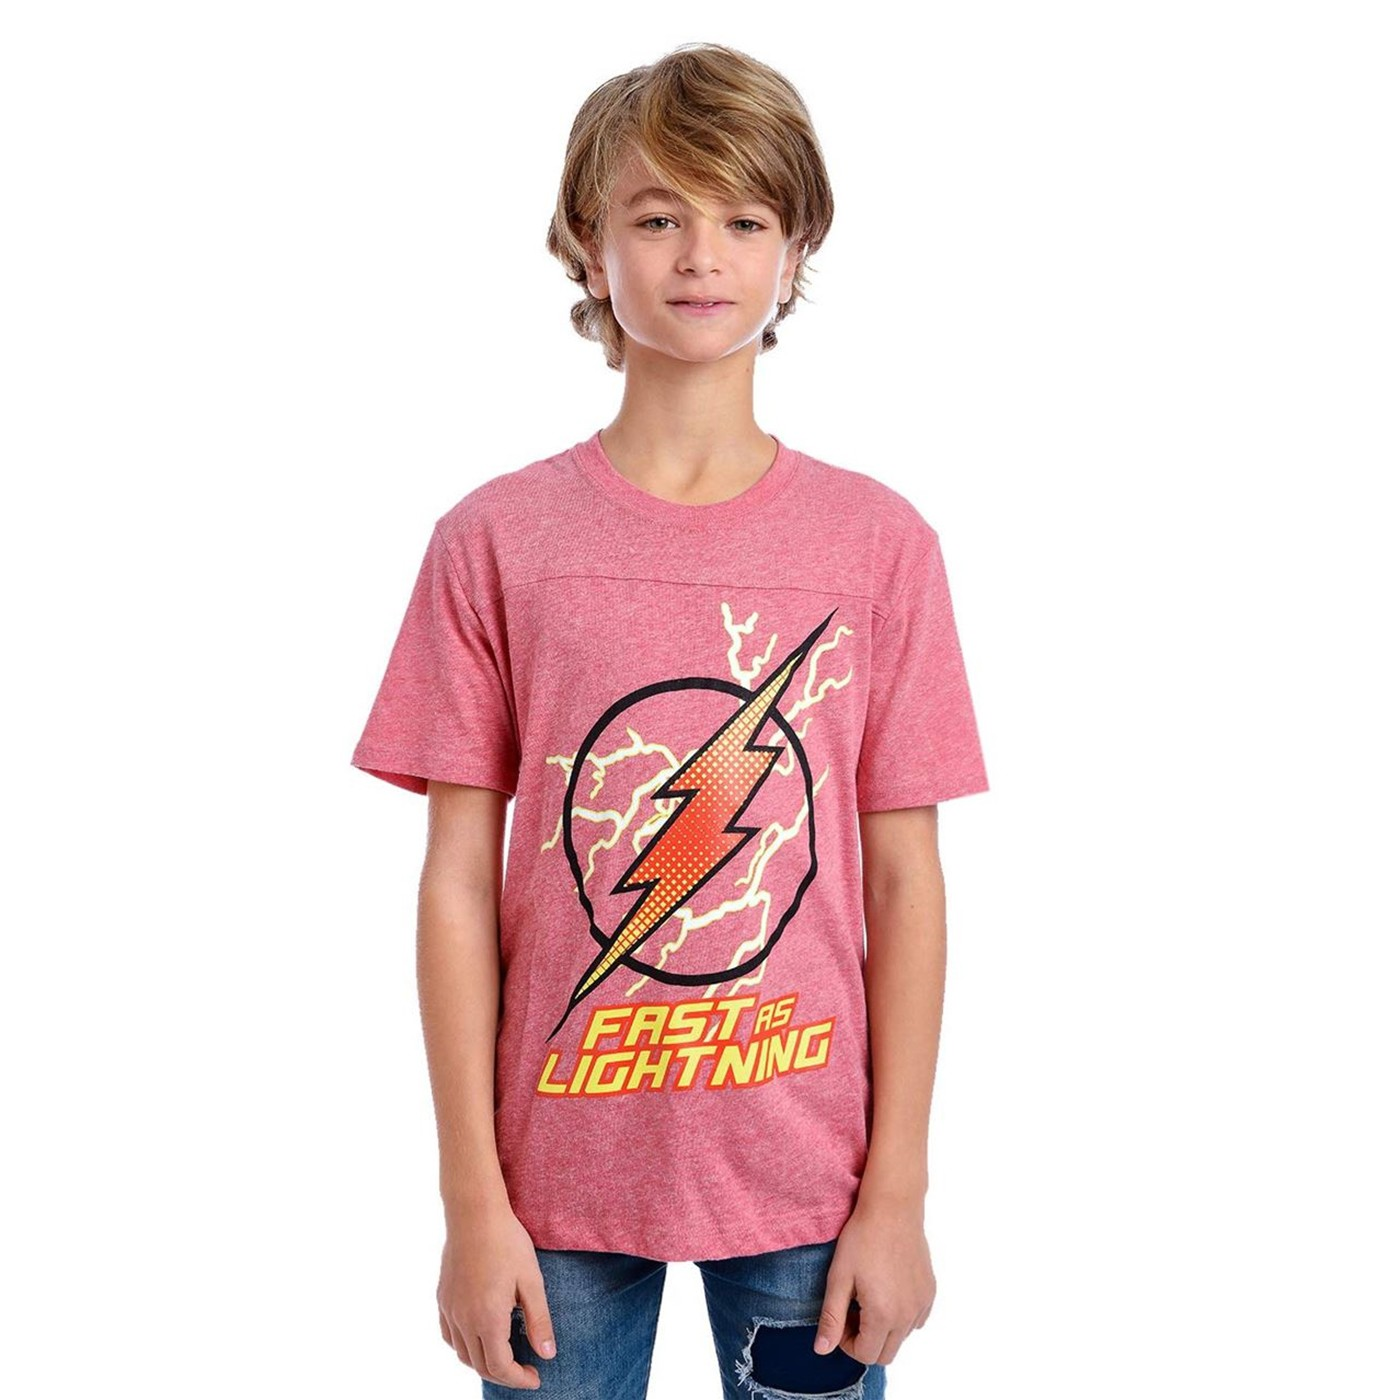 Flash Fast As Lightning Kids T-Shirt